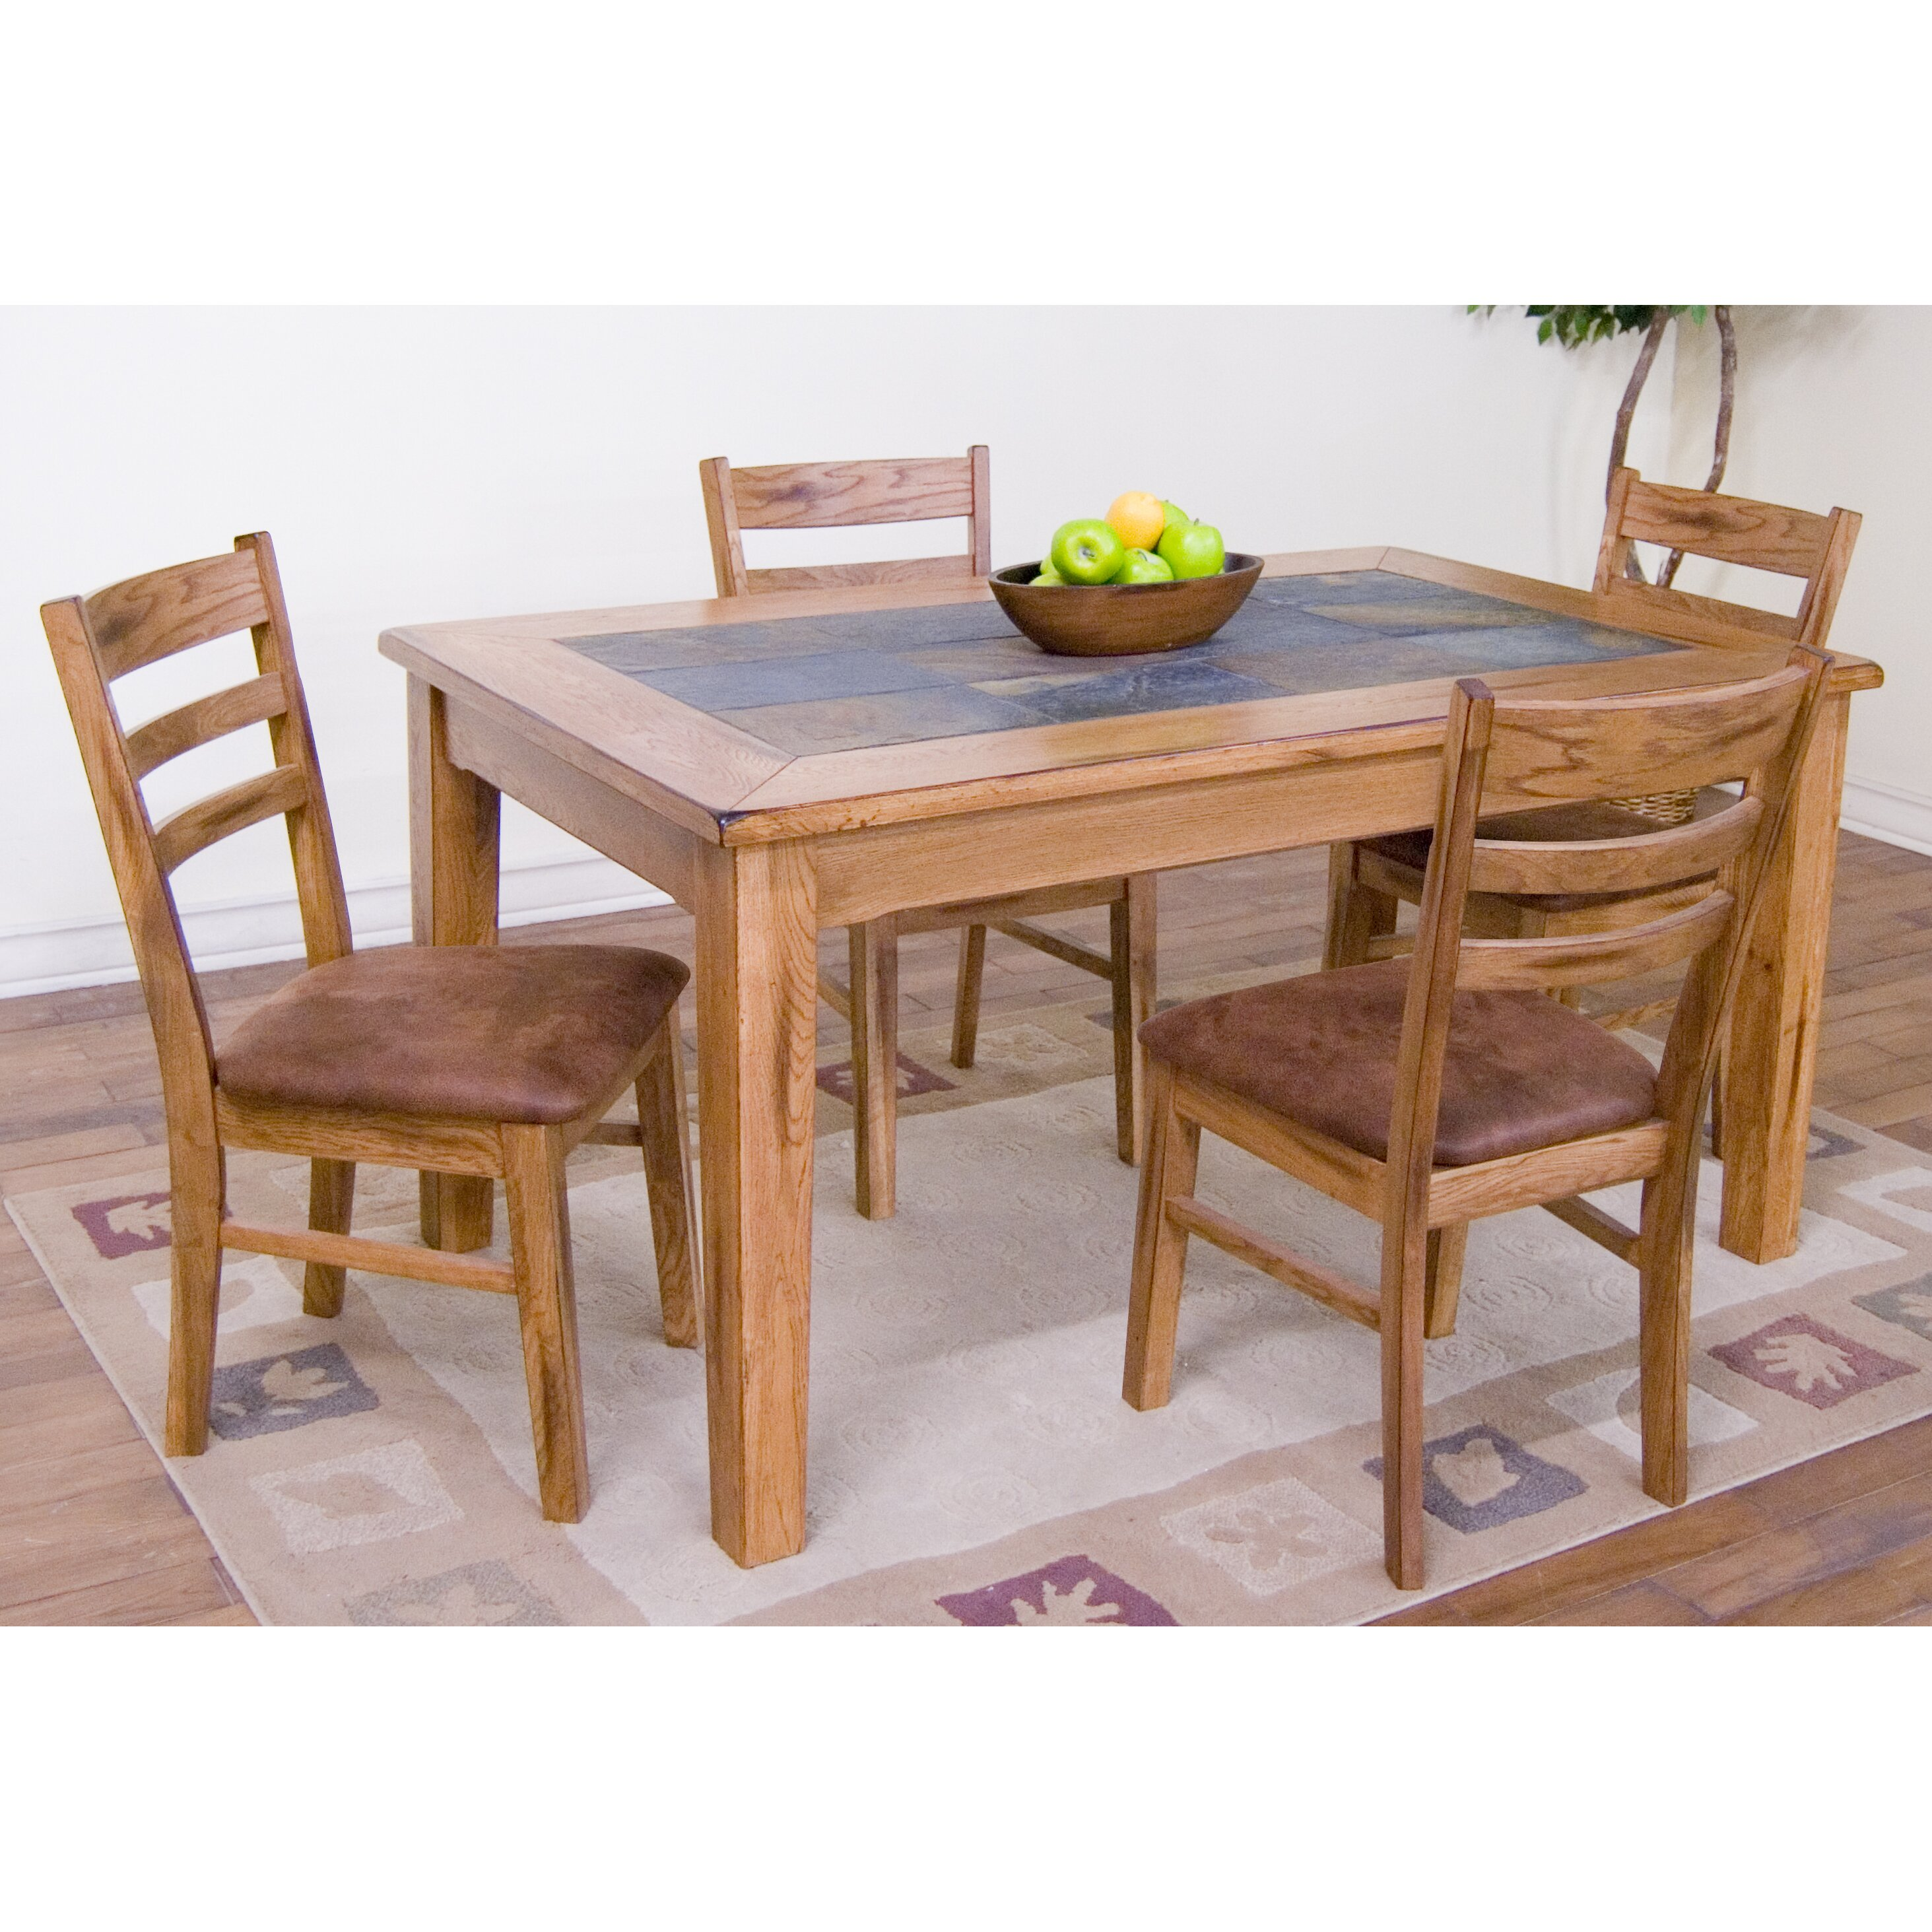 Sunny designs sedona 5 piece dining set reviews wayfair for Html table th always on top